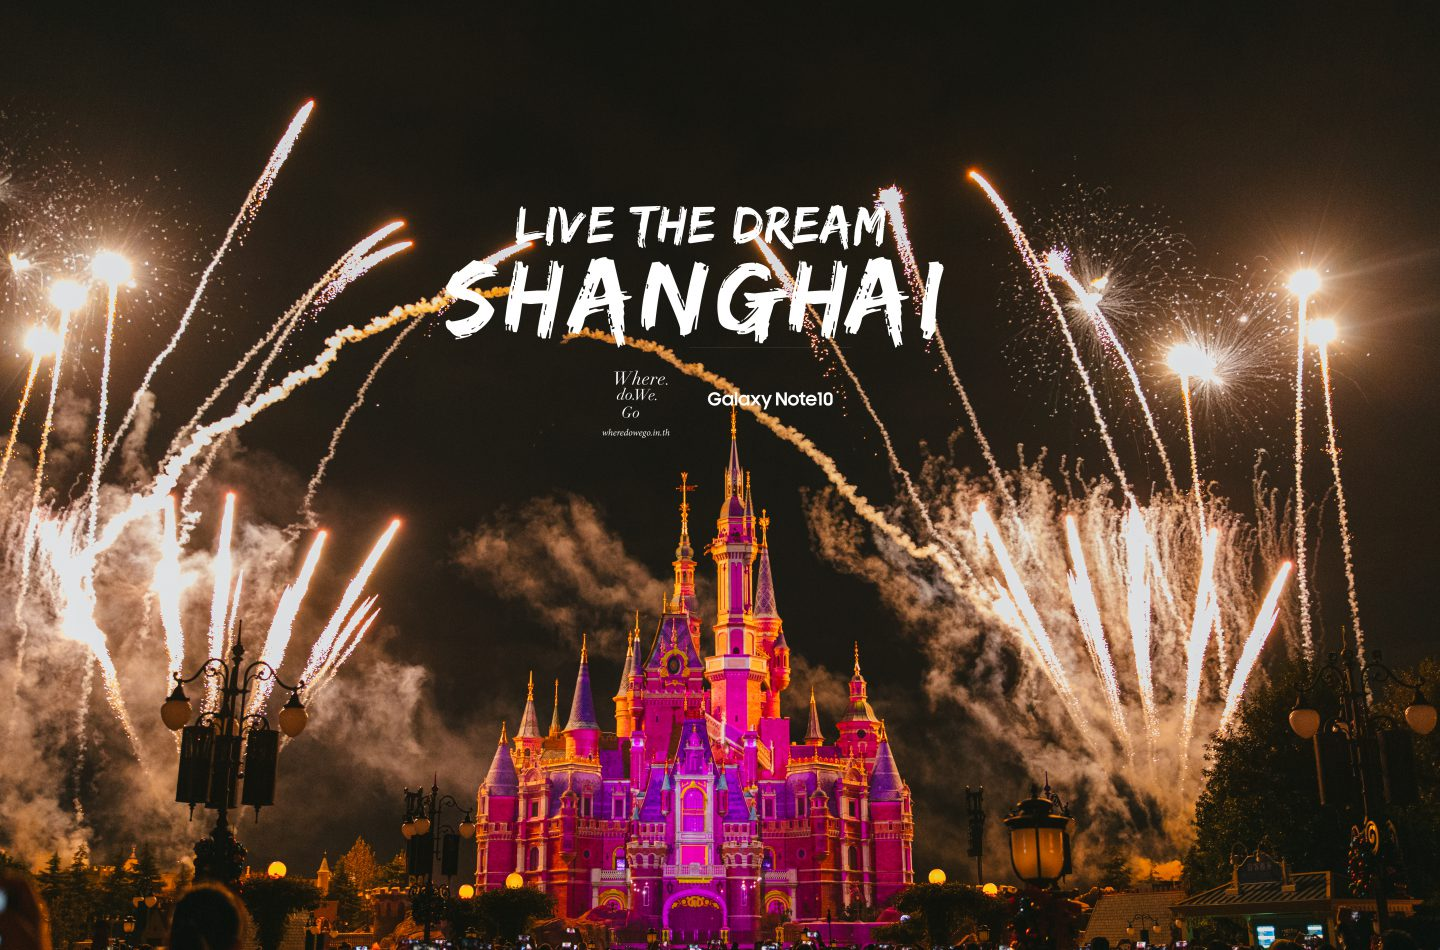 Live the dream, Shanghai